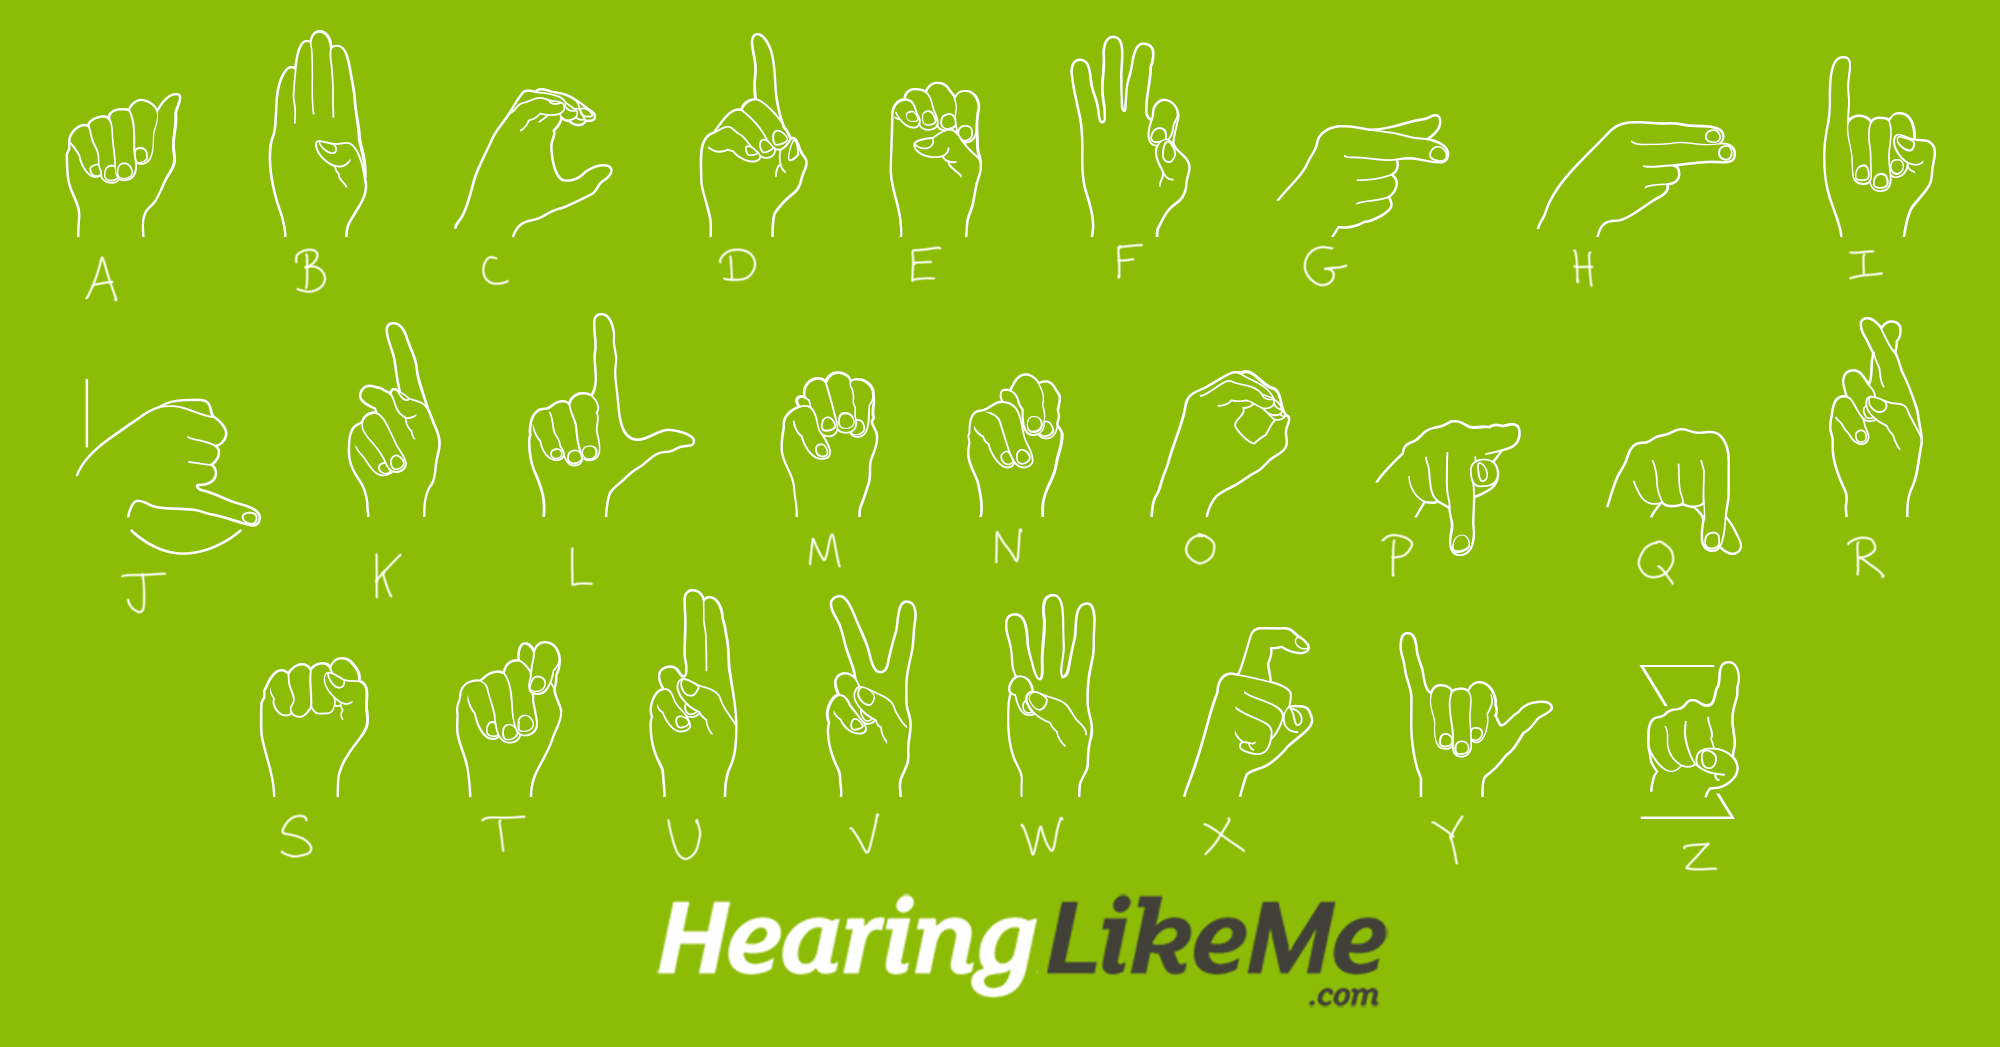 best way to learn sign language online free